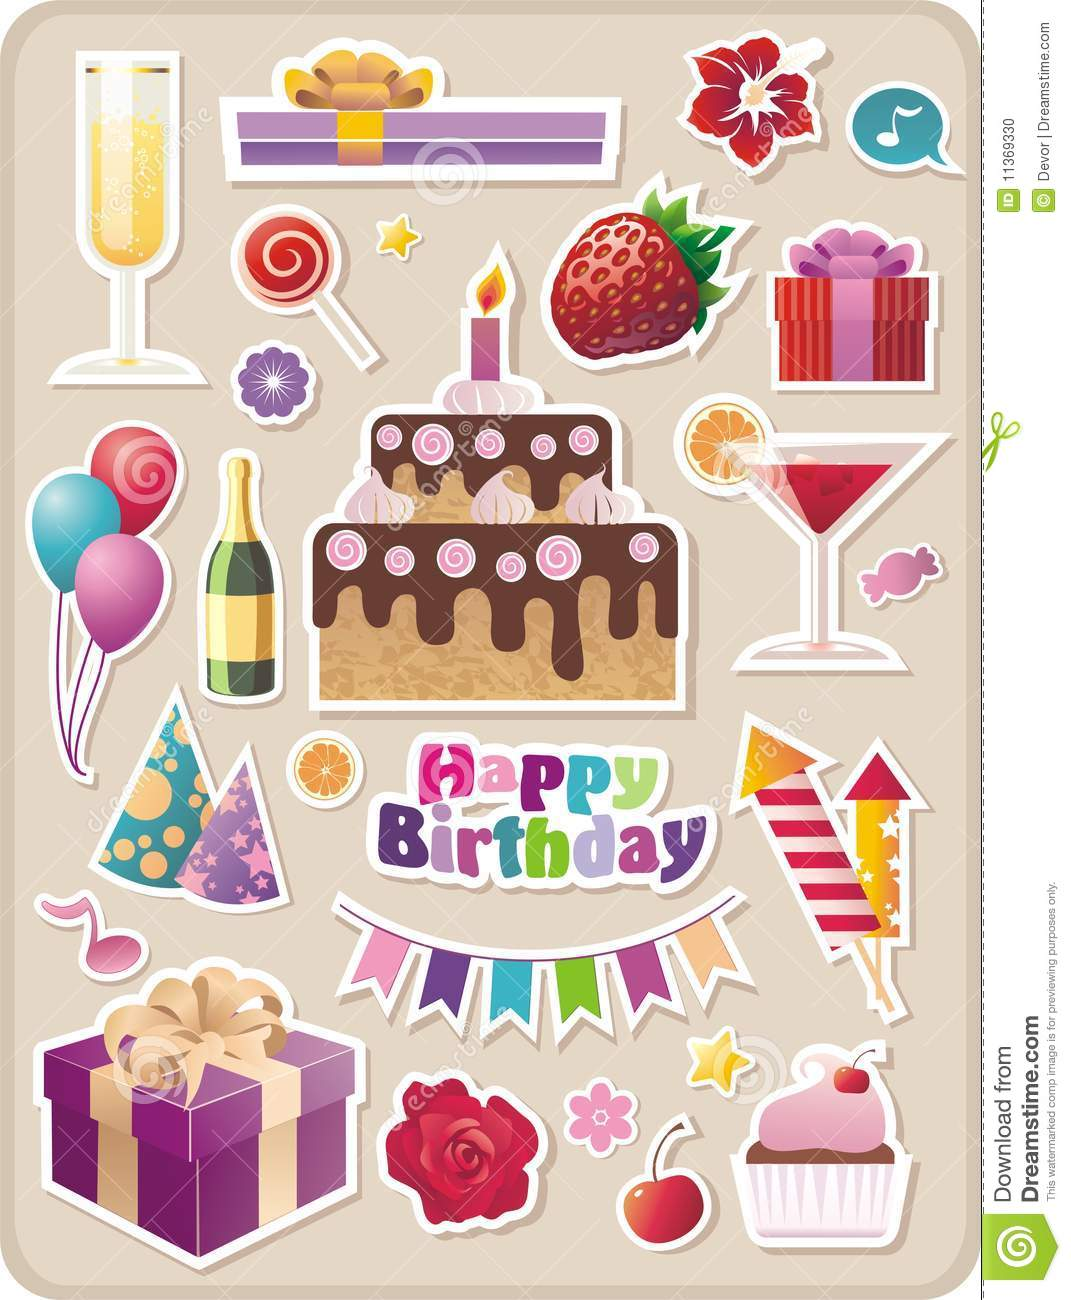 birthday stickers download ; birthday-party-stickers-11369330